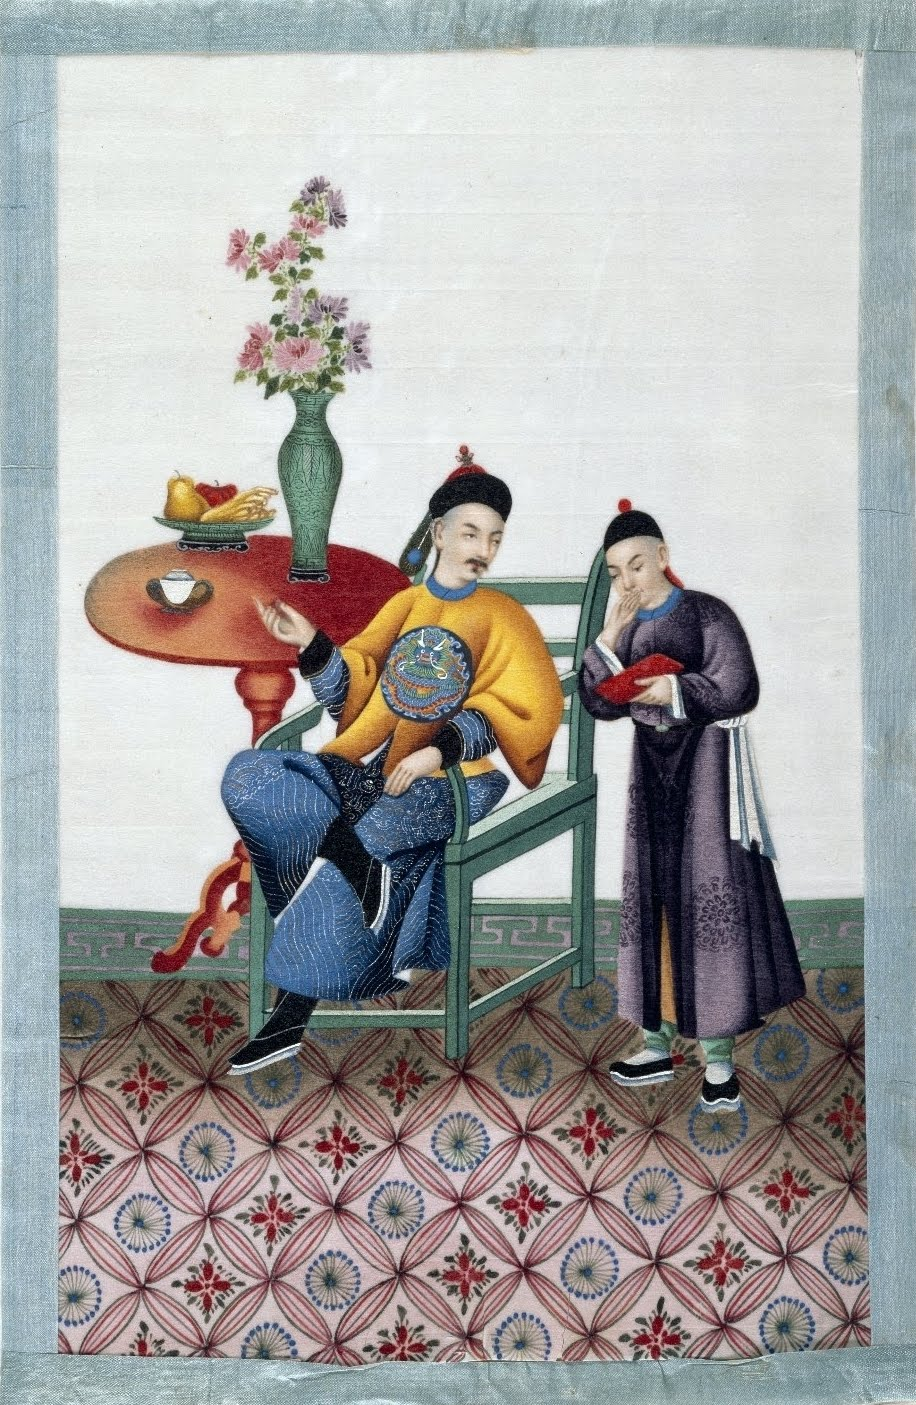 nobility scene in 19th century China